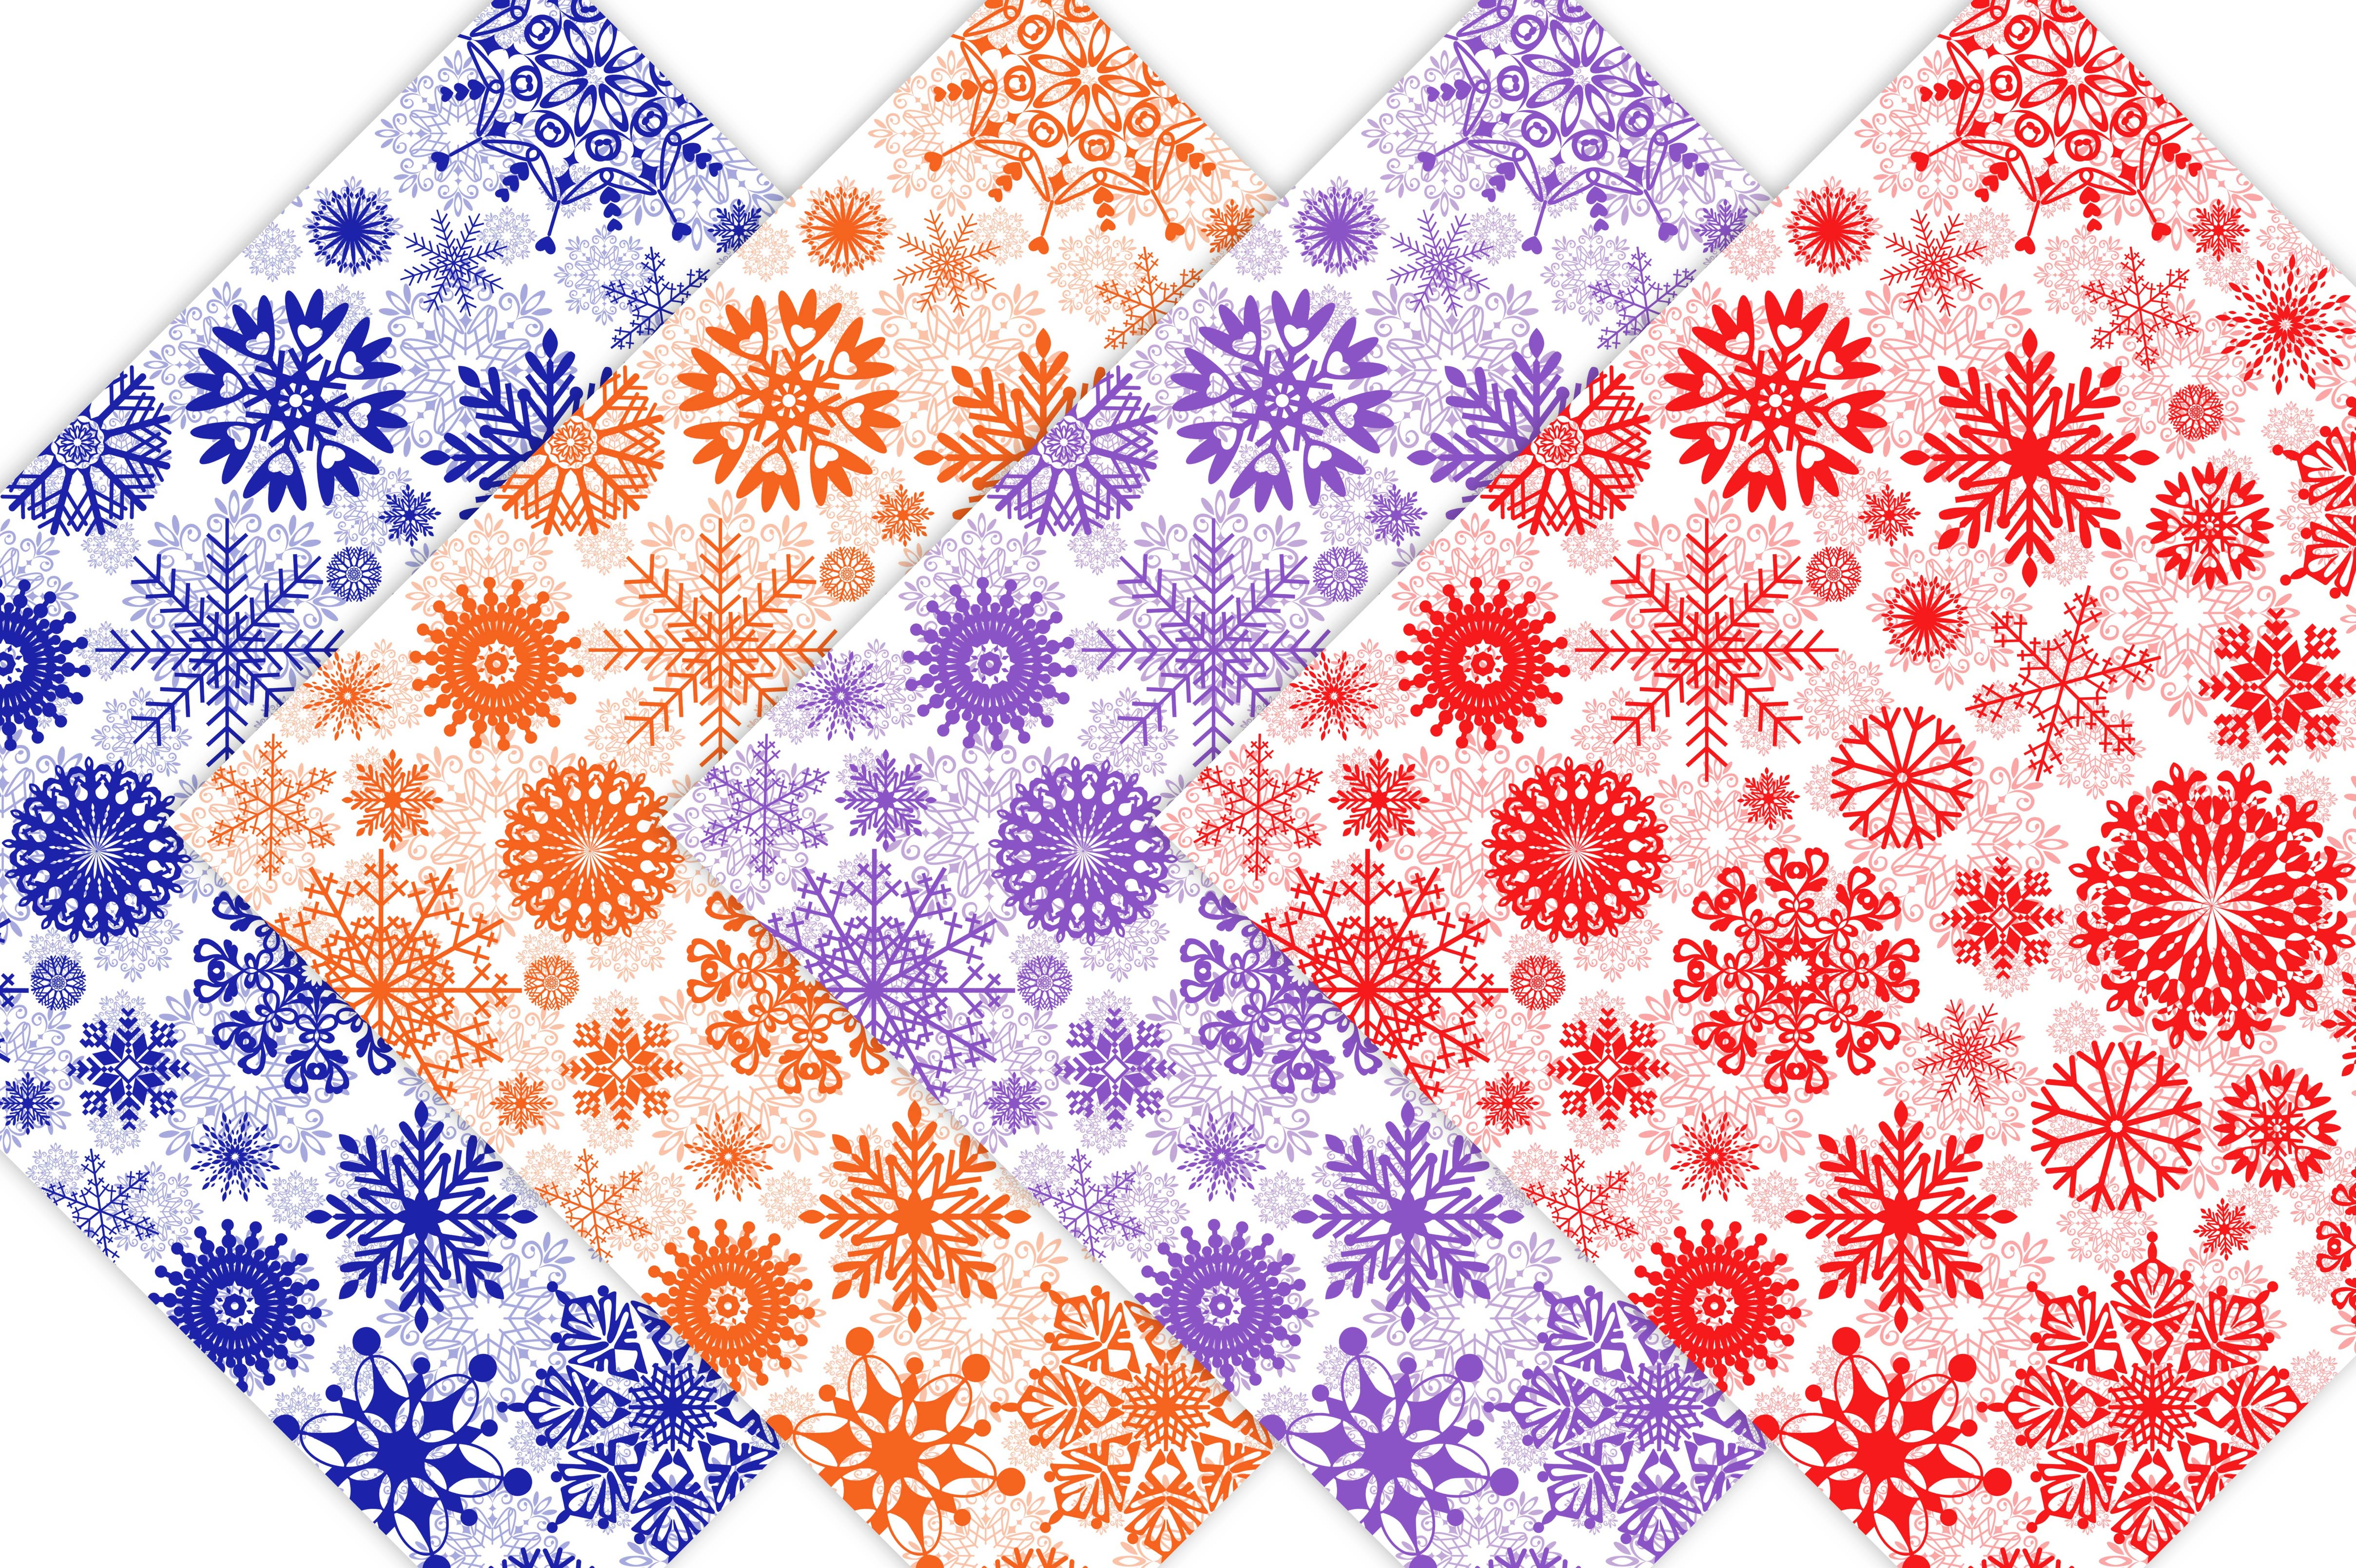 Winter Digital Paper Pack - Snowflake Patterns example image 6